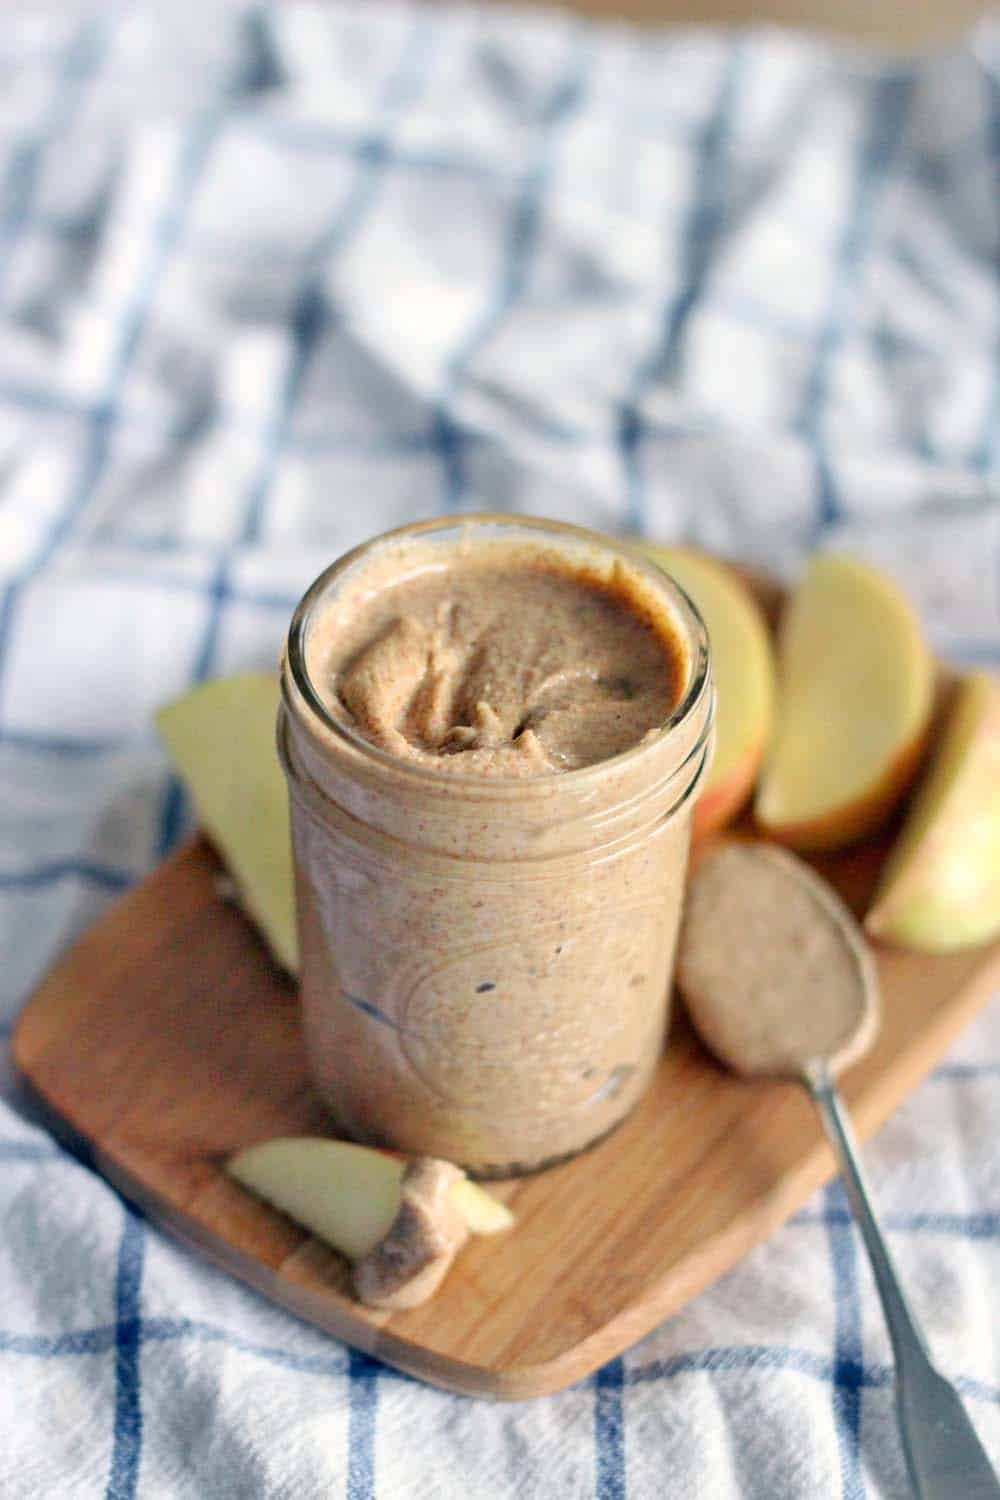 Making your own almond butter is easy, heathy, and cheaper than buying it already made! All you need is ONE ingredient and a food processor! A great Whole30 and Paleo snack.